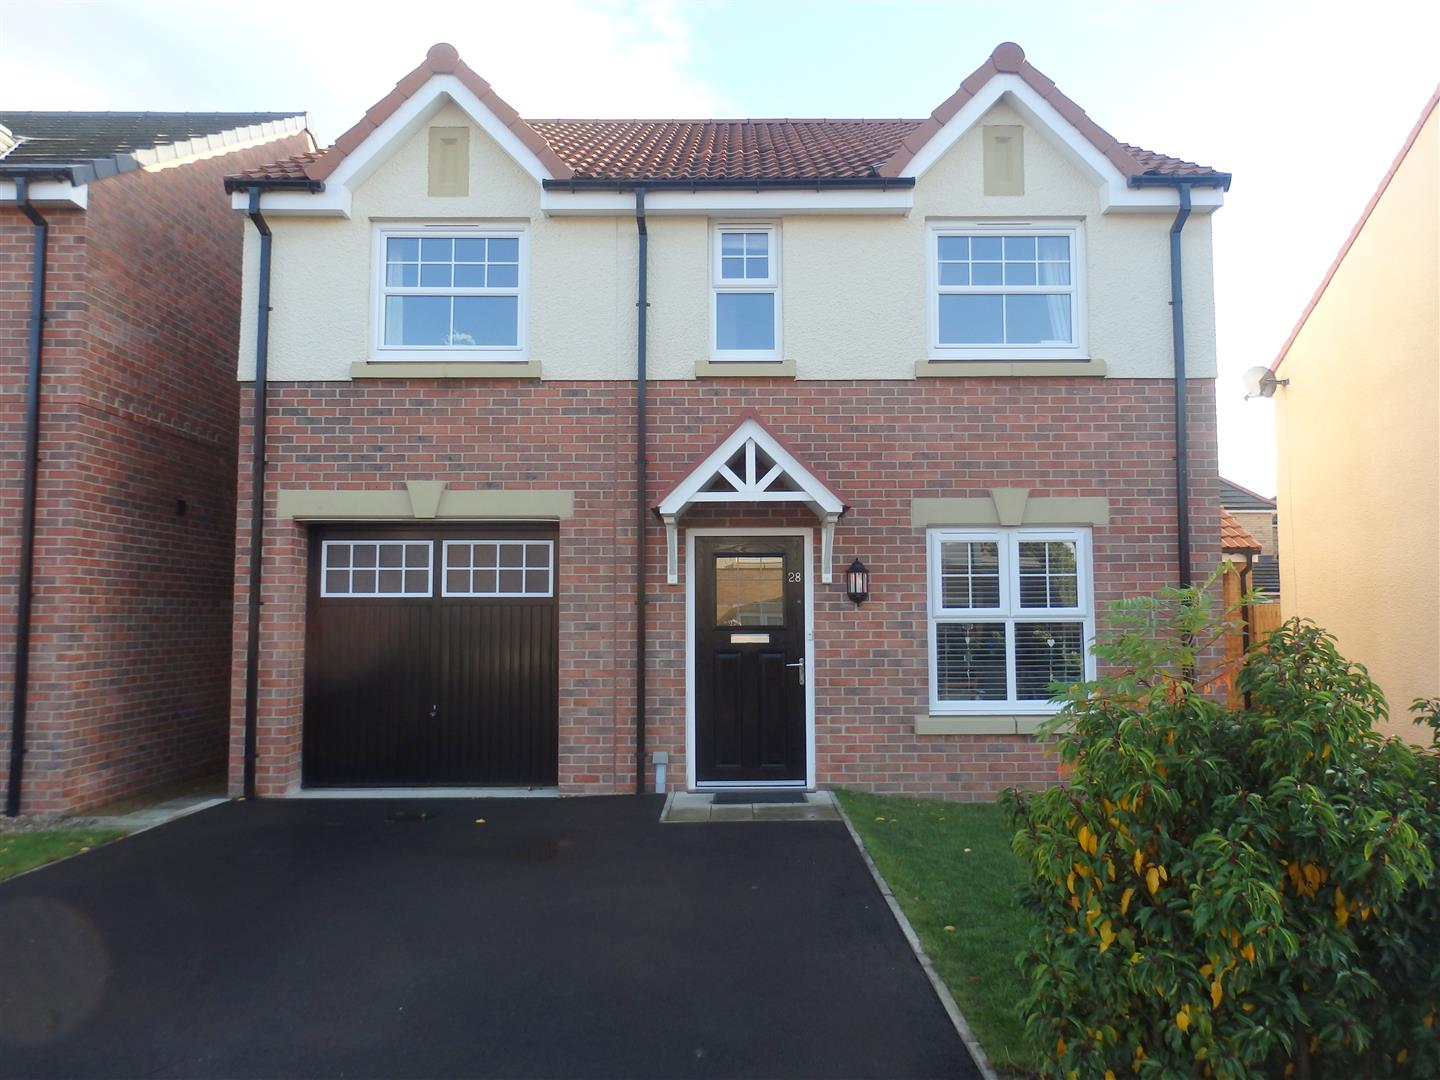 4 Bedrooms Detached House for sale in Abbey Green, Spennymoor